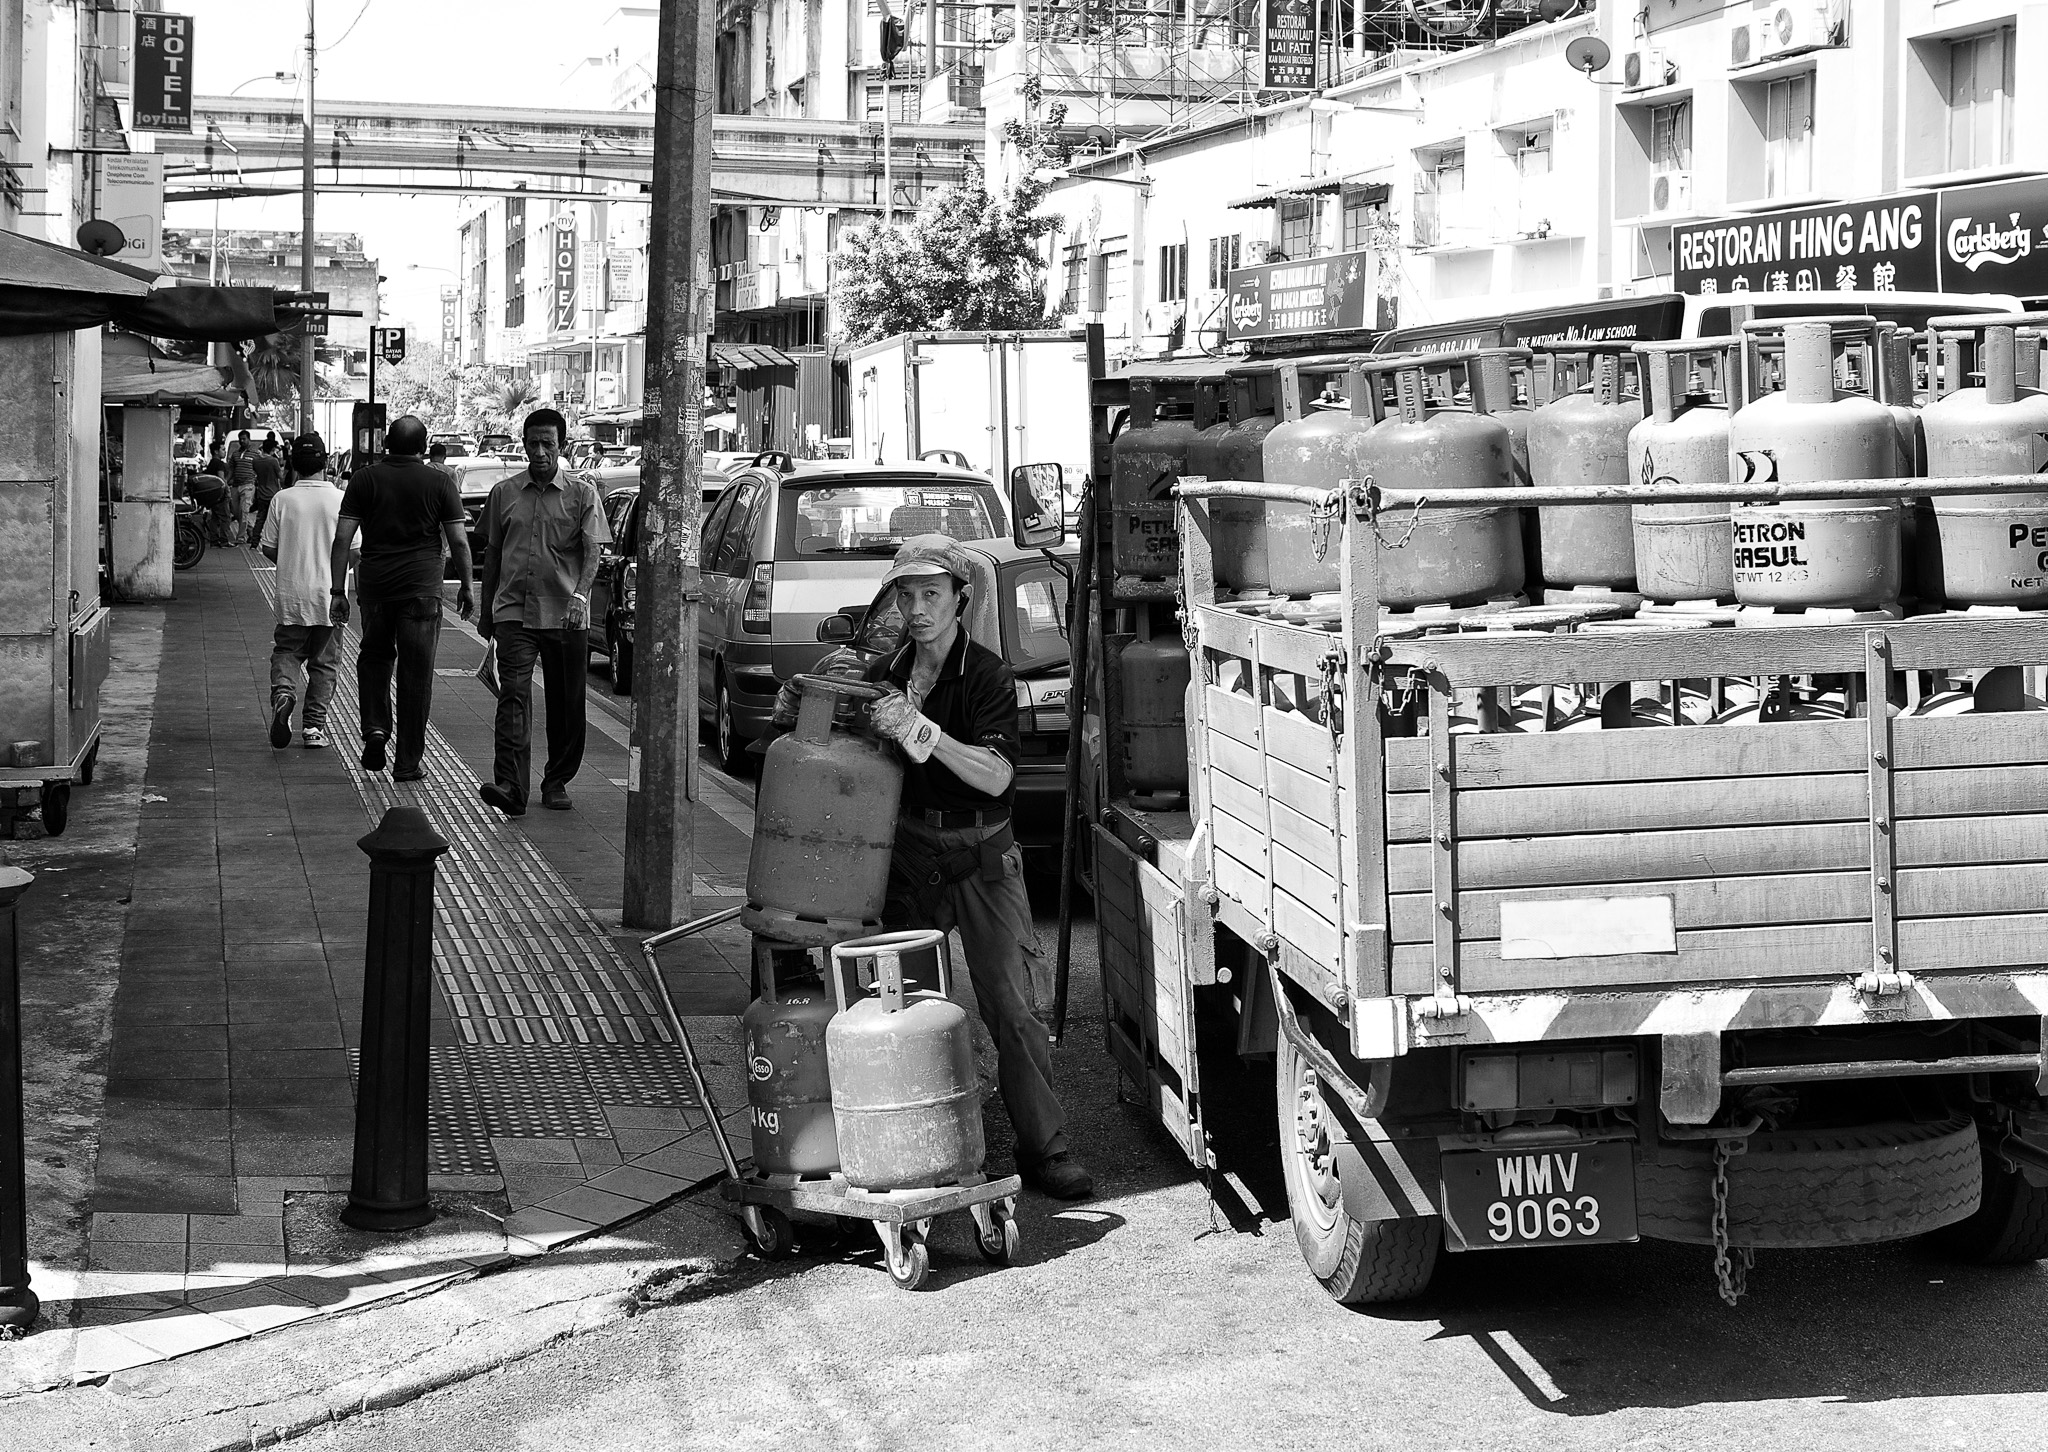 Gas delivery man offloading a few cylinders into his trolley. Brickfields, Kuala Lumpur, Malaysia